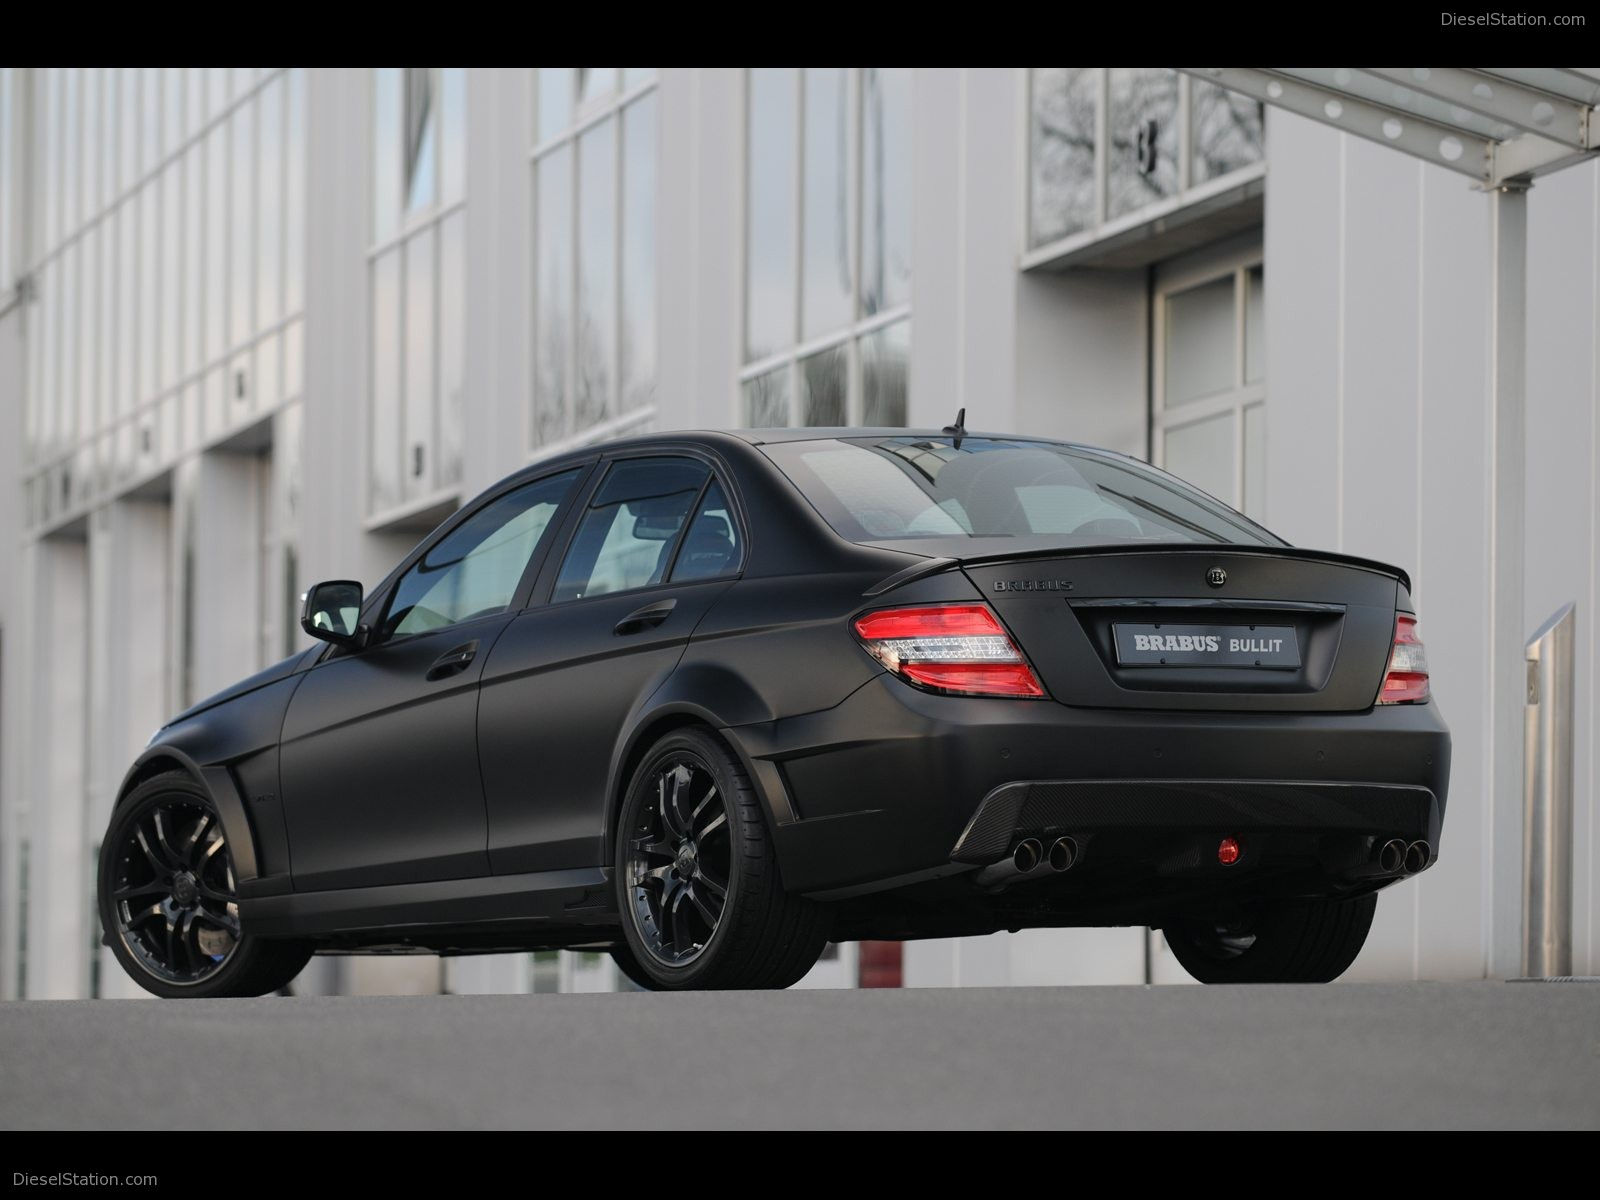 2019 Brabus Bullit Black Arrow photo - 6